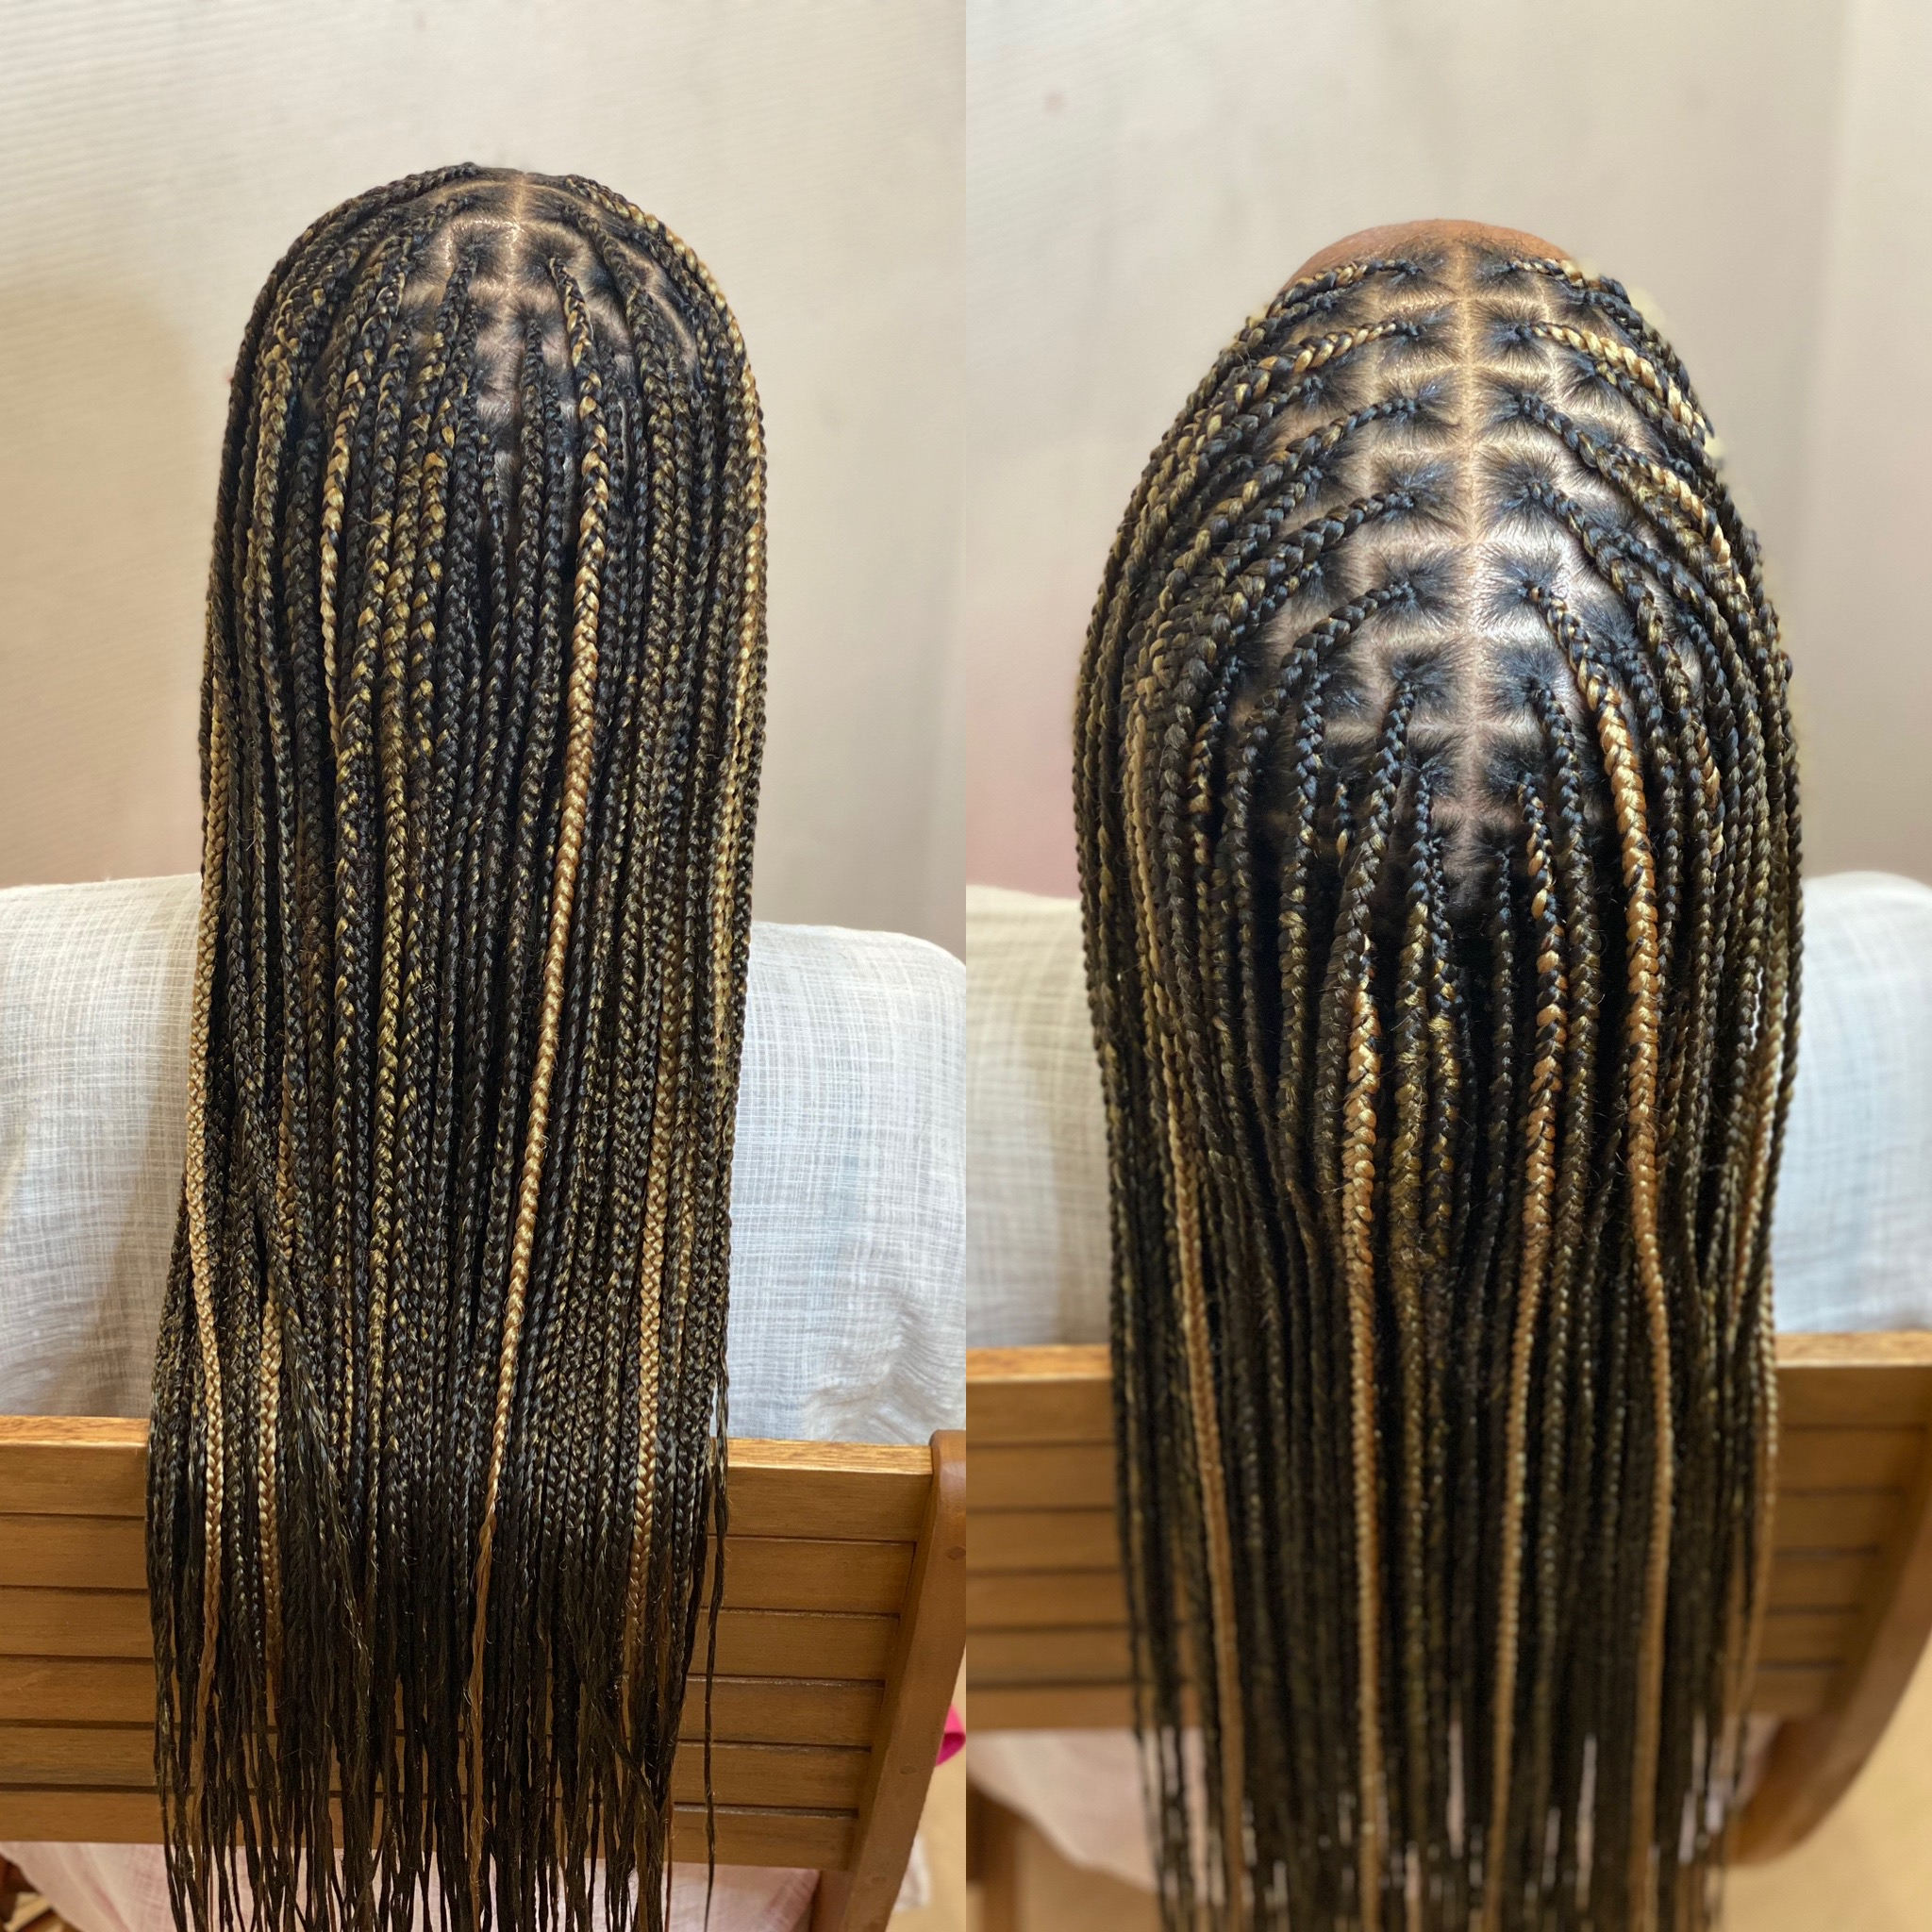 salon de coiffure afro tresse tresses box braids crochet braids vanilles tissages paris 75 77 78 91 92 93 94 95 KGFBBEVA